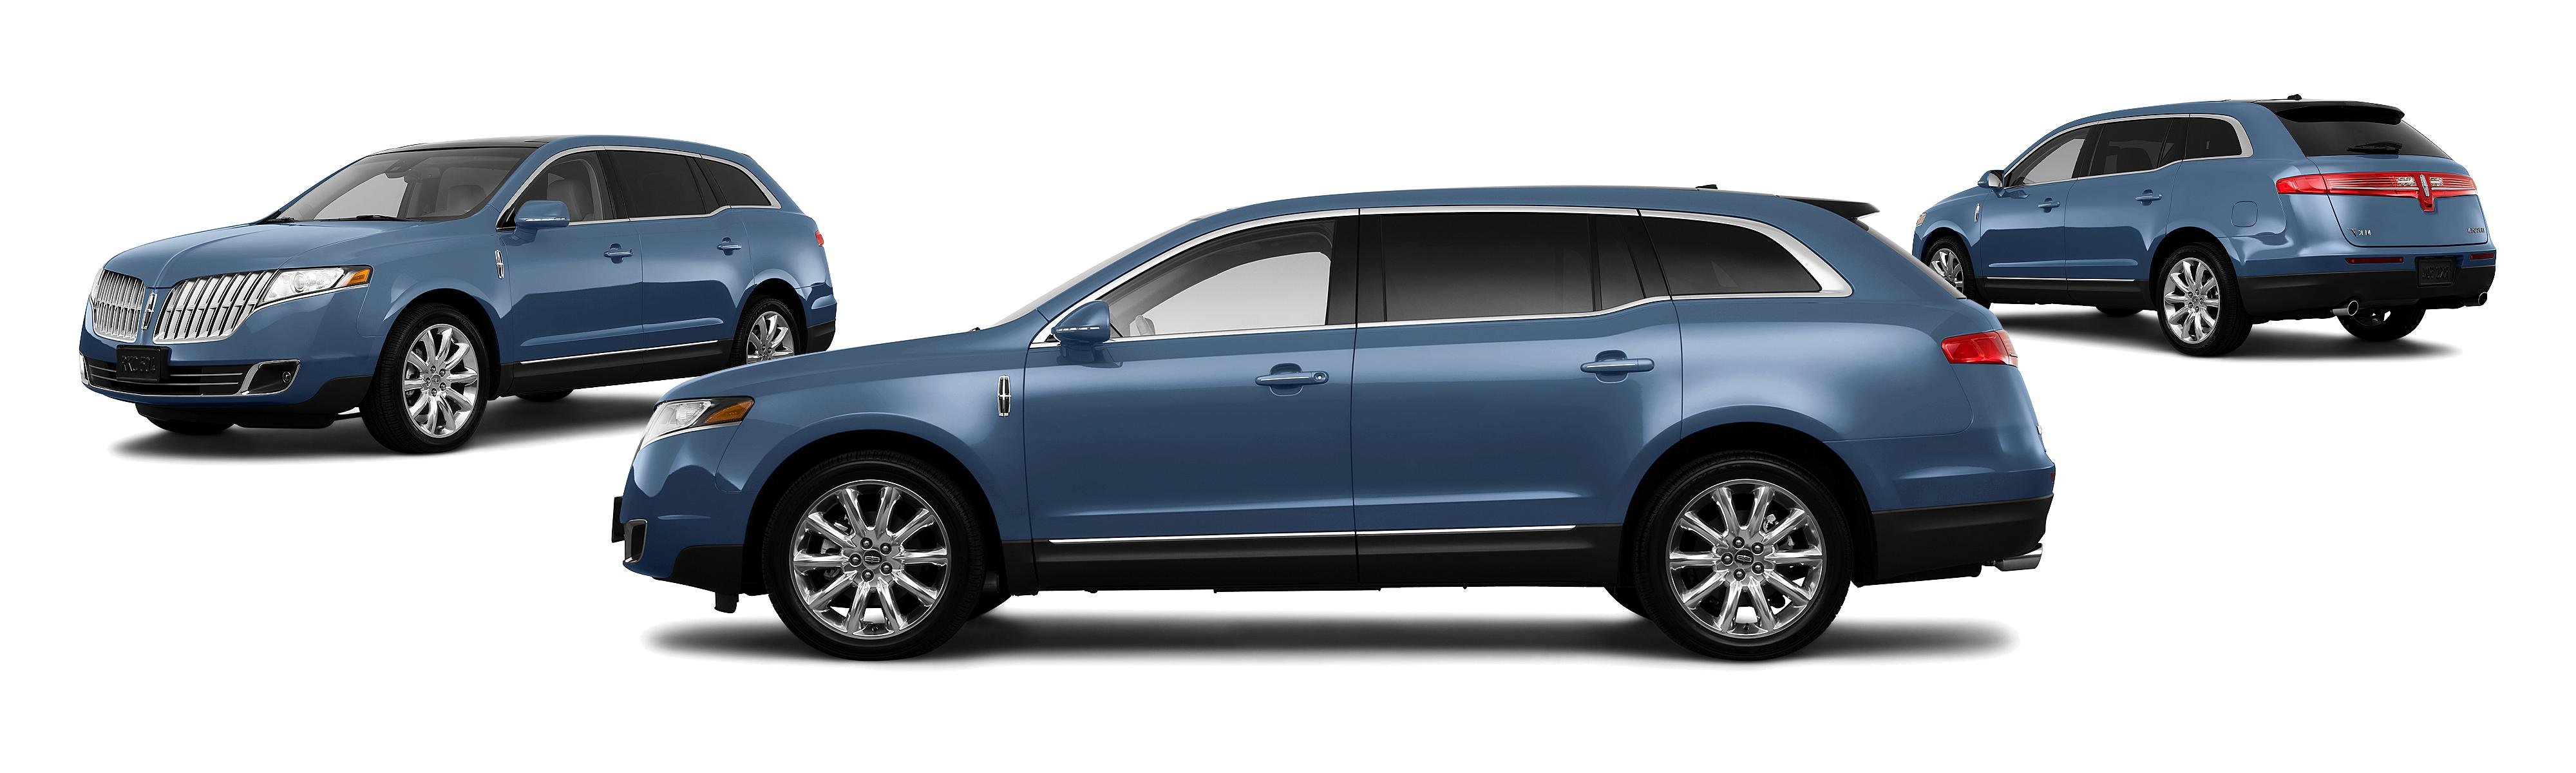 https://www.groovecar.com/stock/images/color/2010/lincoln/mkt/4dr-crossover/2010-lincoln-mkt-4dr-crossover-steel-blue-metallic-composite-large.jpg